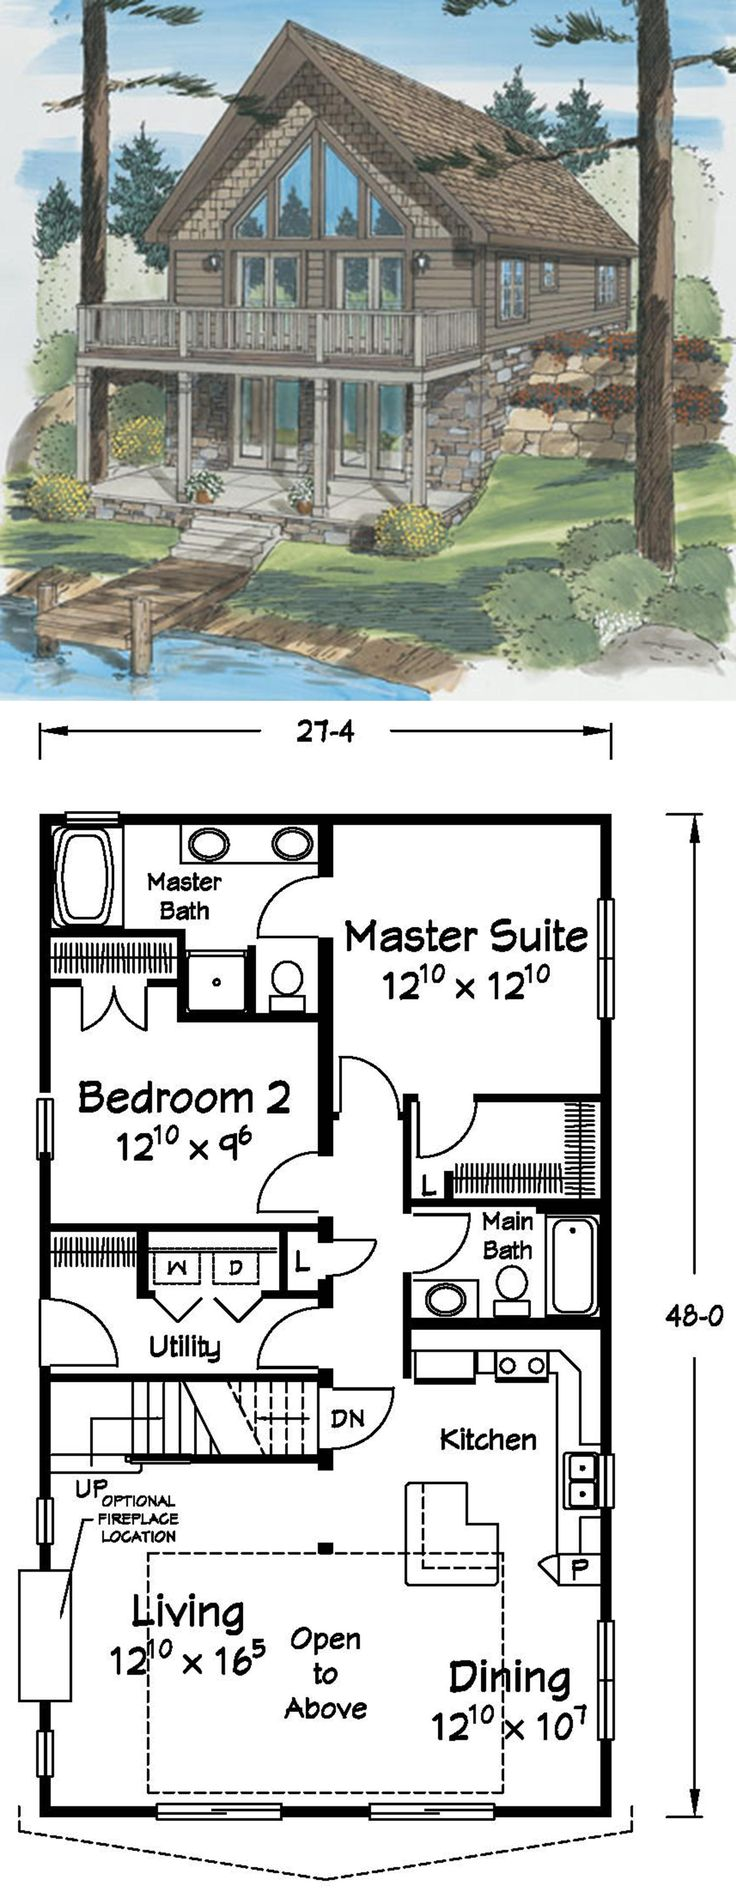 25 best ideas about lake house plans on pinterest open Lake house builders